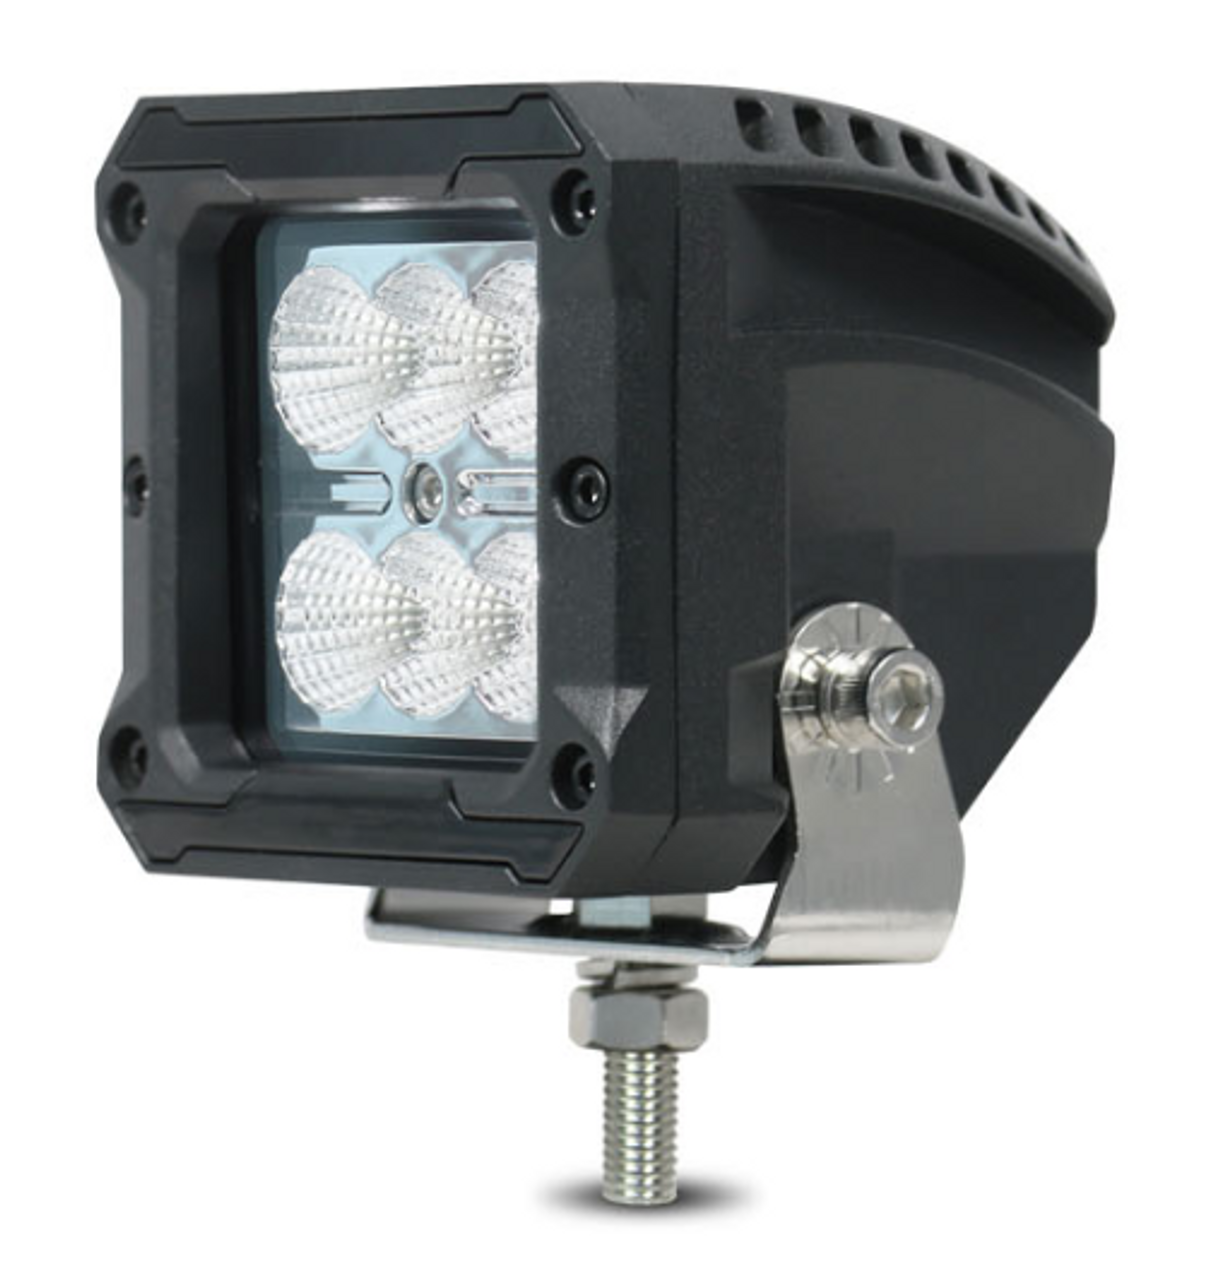 RWL3420F - 4 Inch Square LED Flood Beam Work Light. 20 Watt. Multi-Volt 10 to 30 Volt DC. 5 Year Warranty. Flood Beam 20 watts. Roadvision. Ultimate LED.